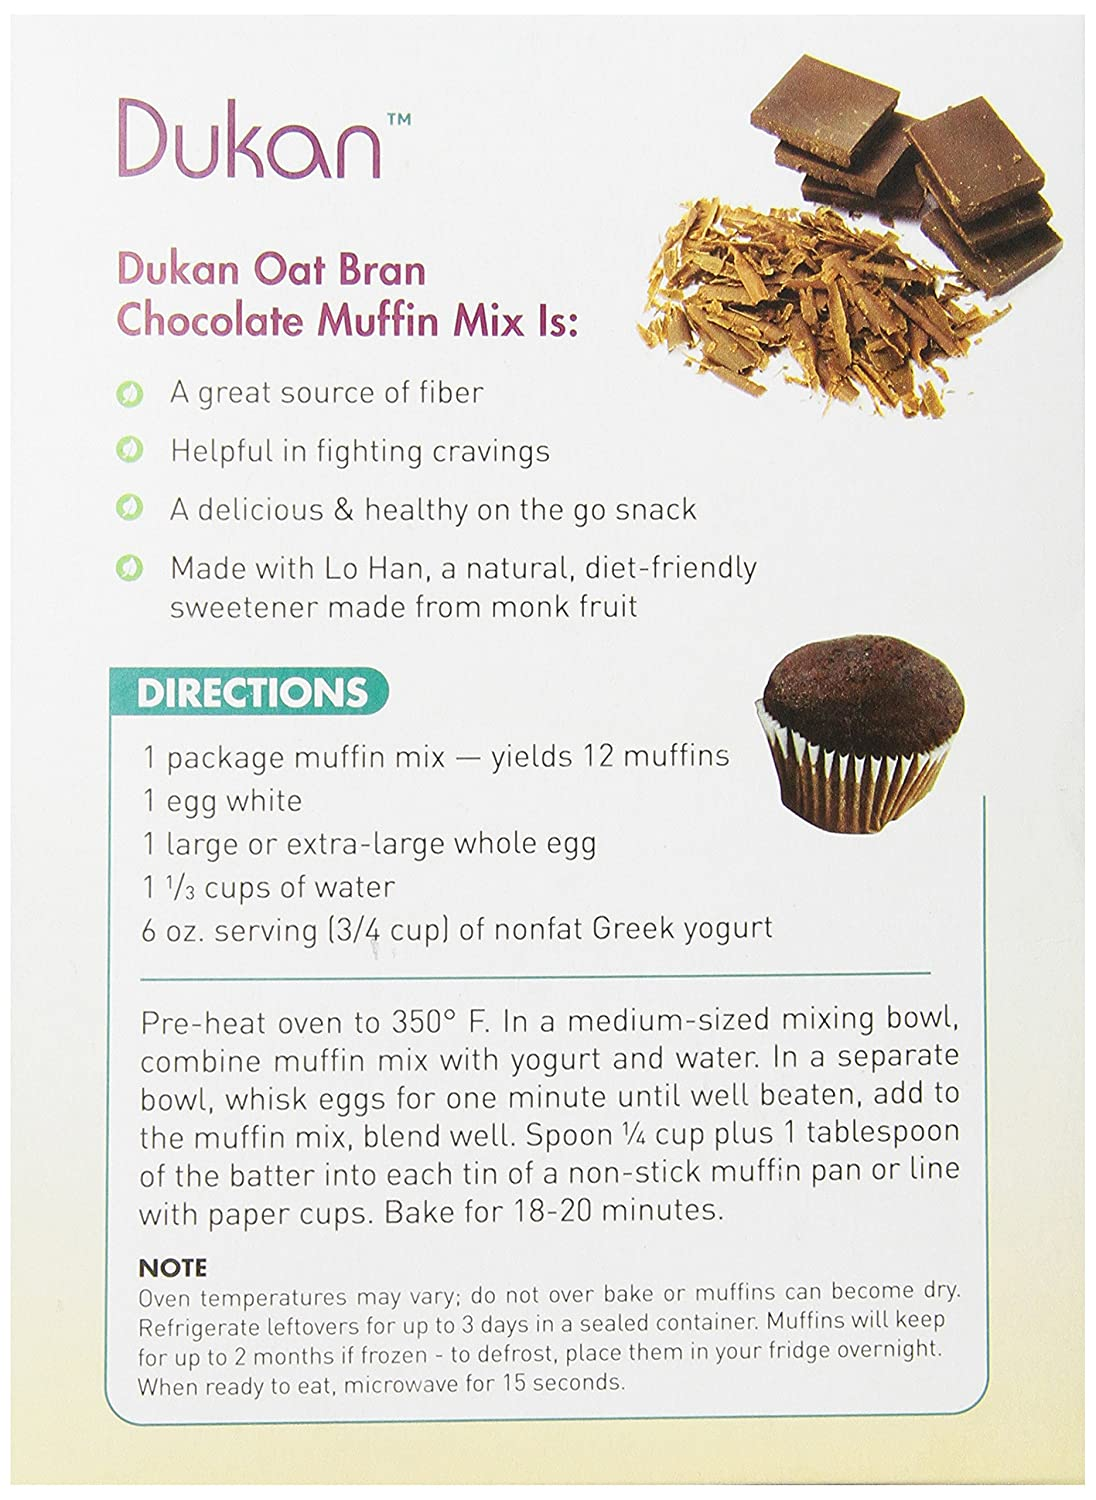 Dukan Diet Oat Bran Muffin Mix, Chocolate, 10 Ounce: Amazon.es: Alimentación y bebidas